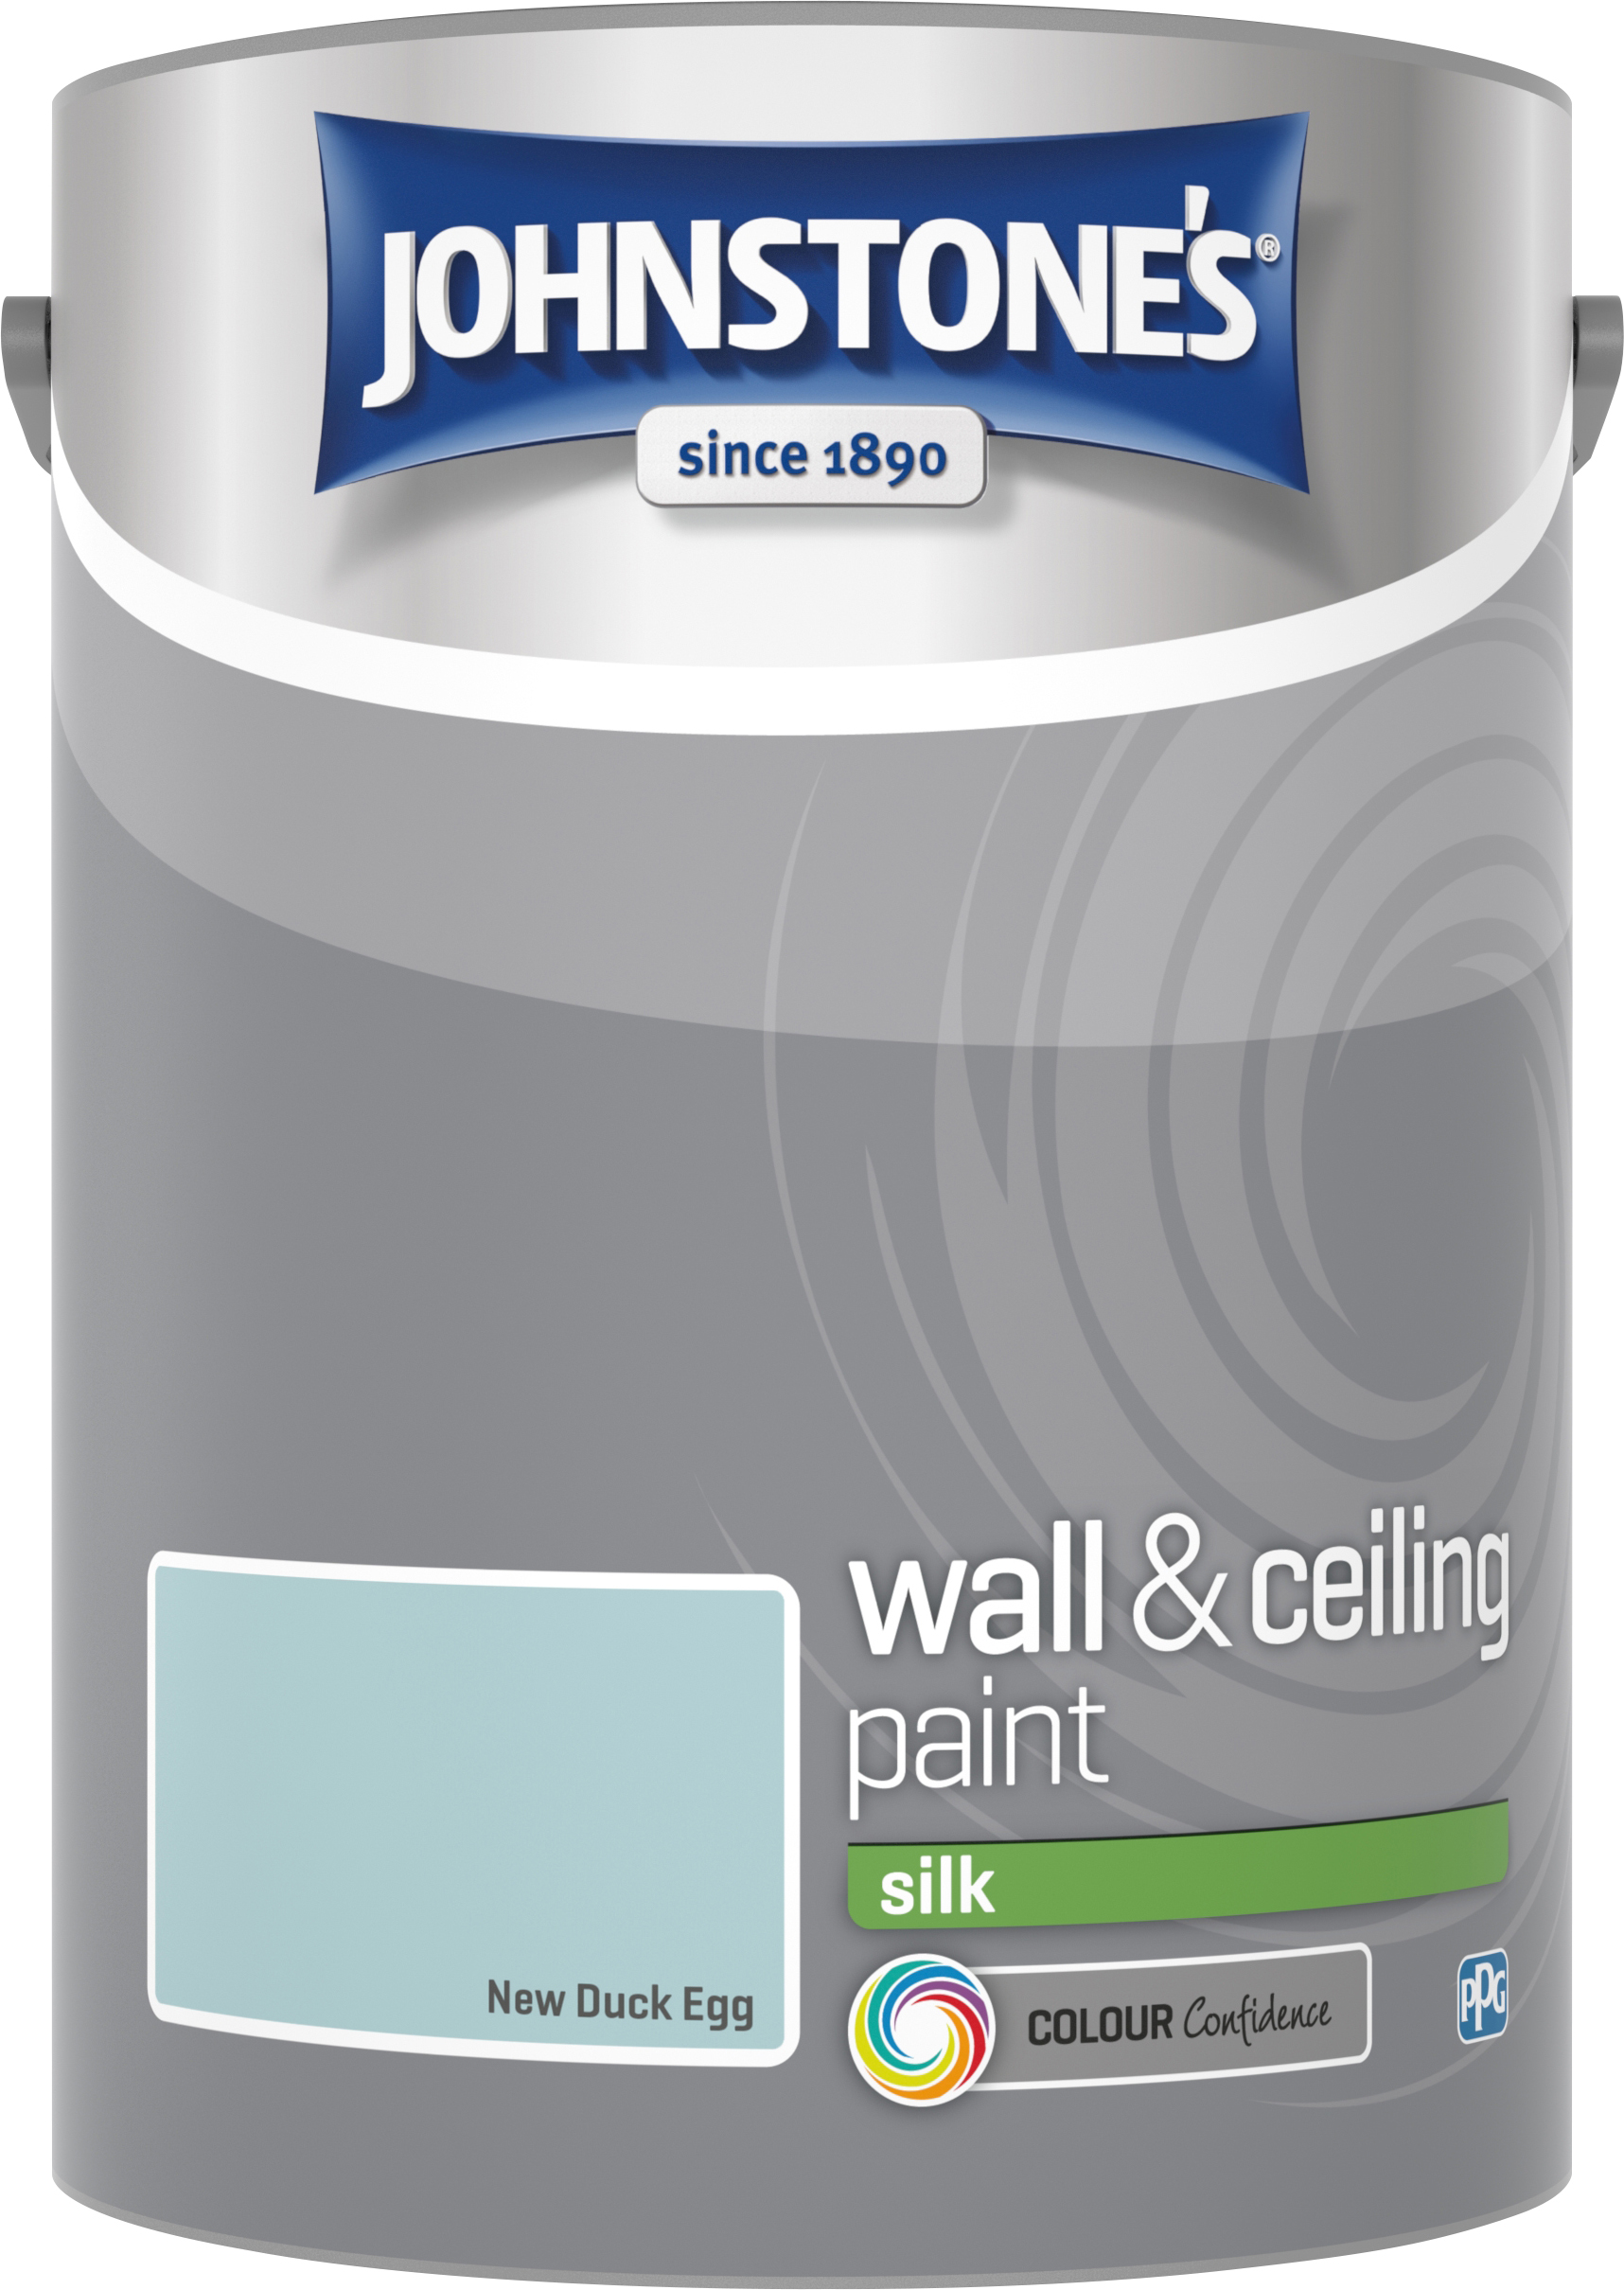 Johnstone's 5 Litre Silk Emulsion Paint - New Duck Egg